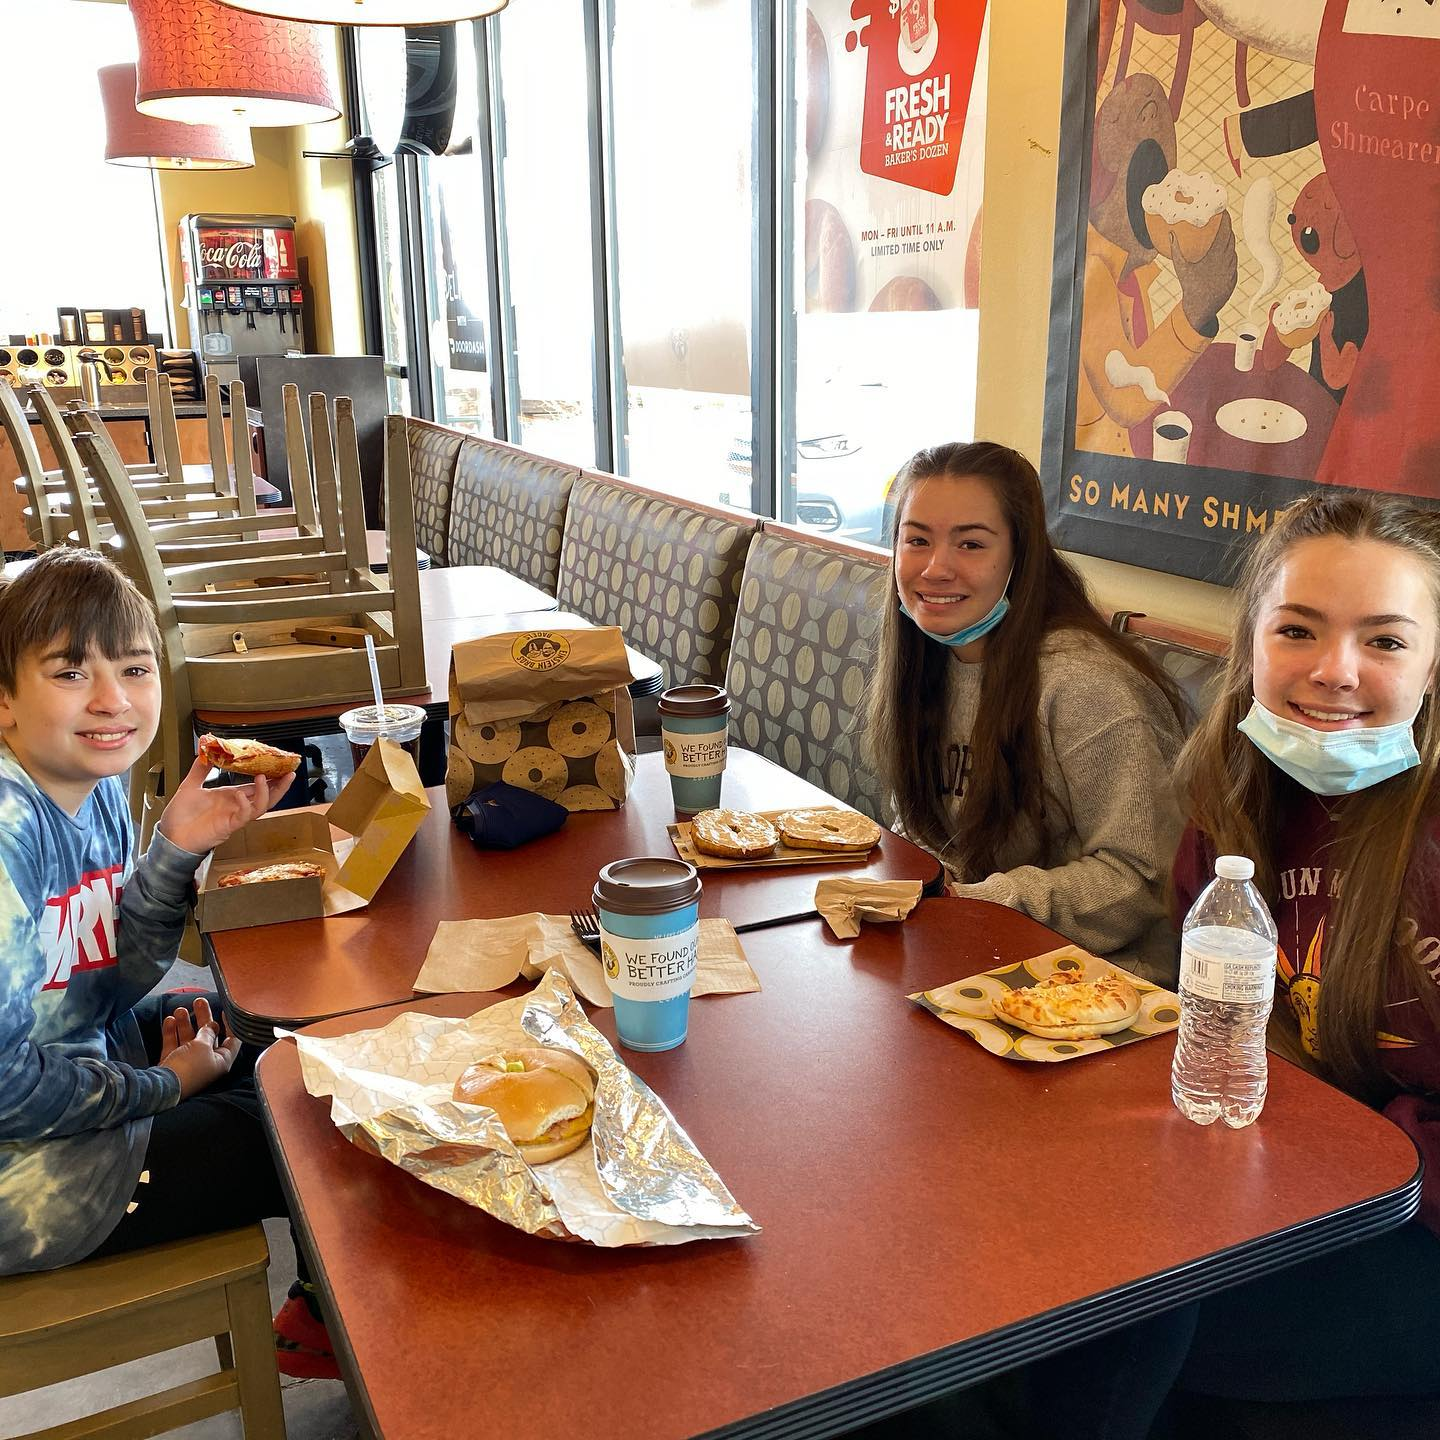 Starting off the morning right- bagels any way you can imagine at Einstein Bagels! They were delicious and coffee is good too.  Say Good Morning Sunshine! #goodmornings #goodbreakfasts #familymealtimes #bagelbites